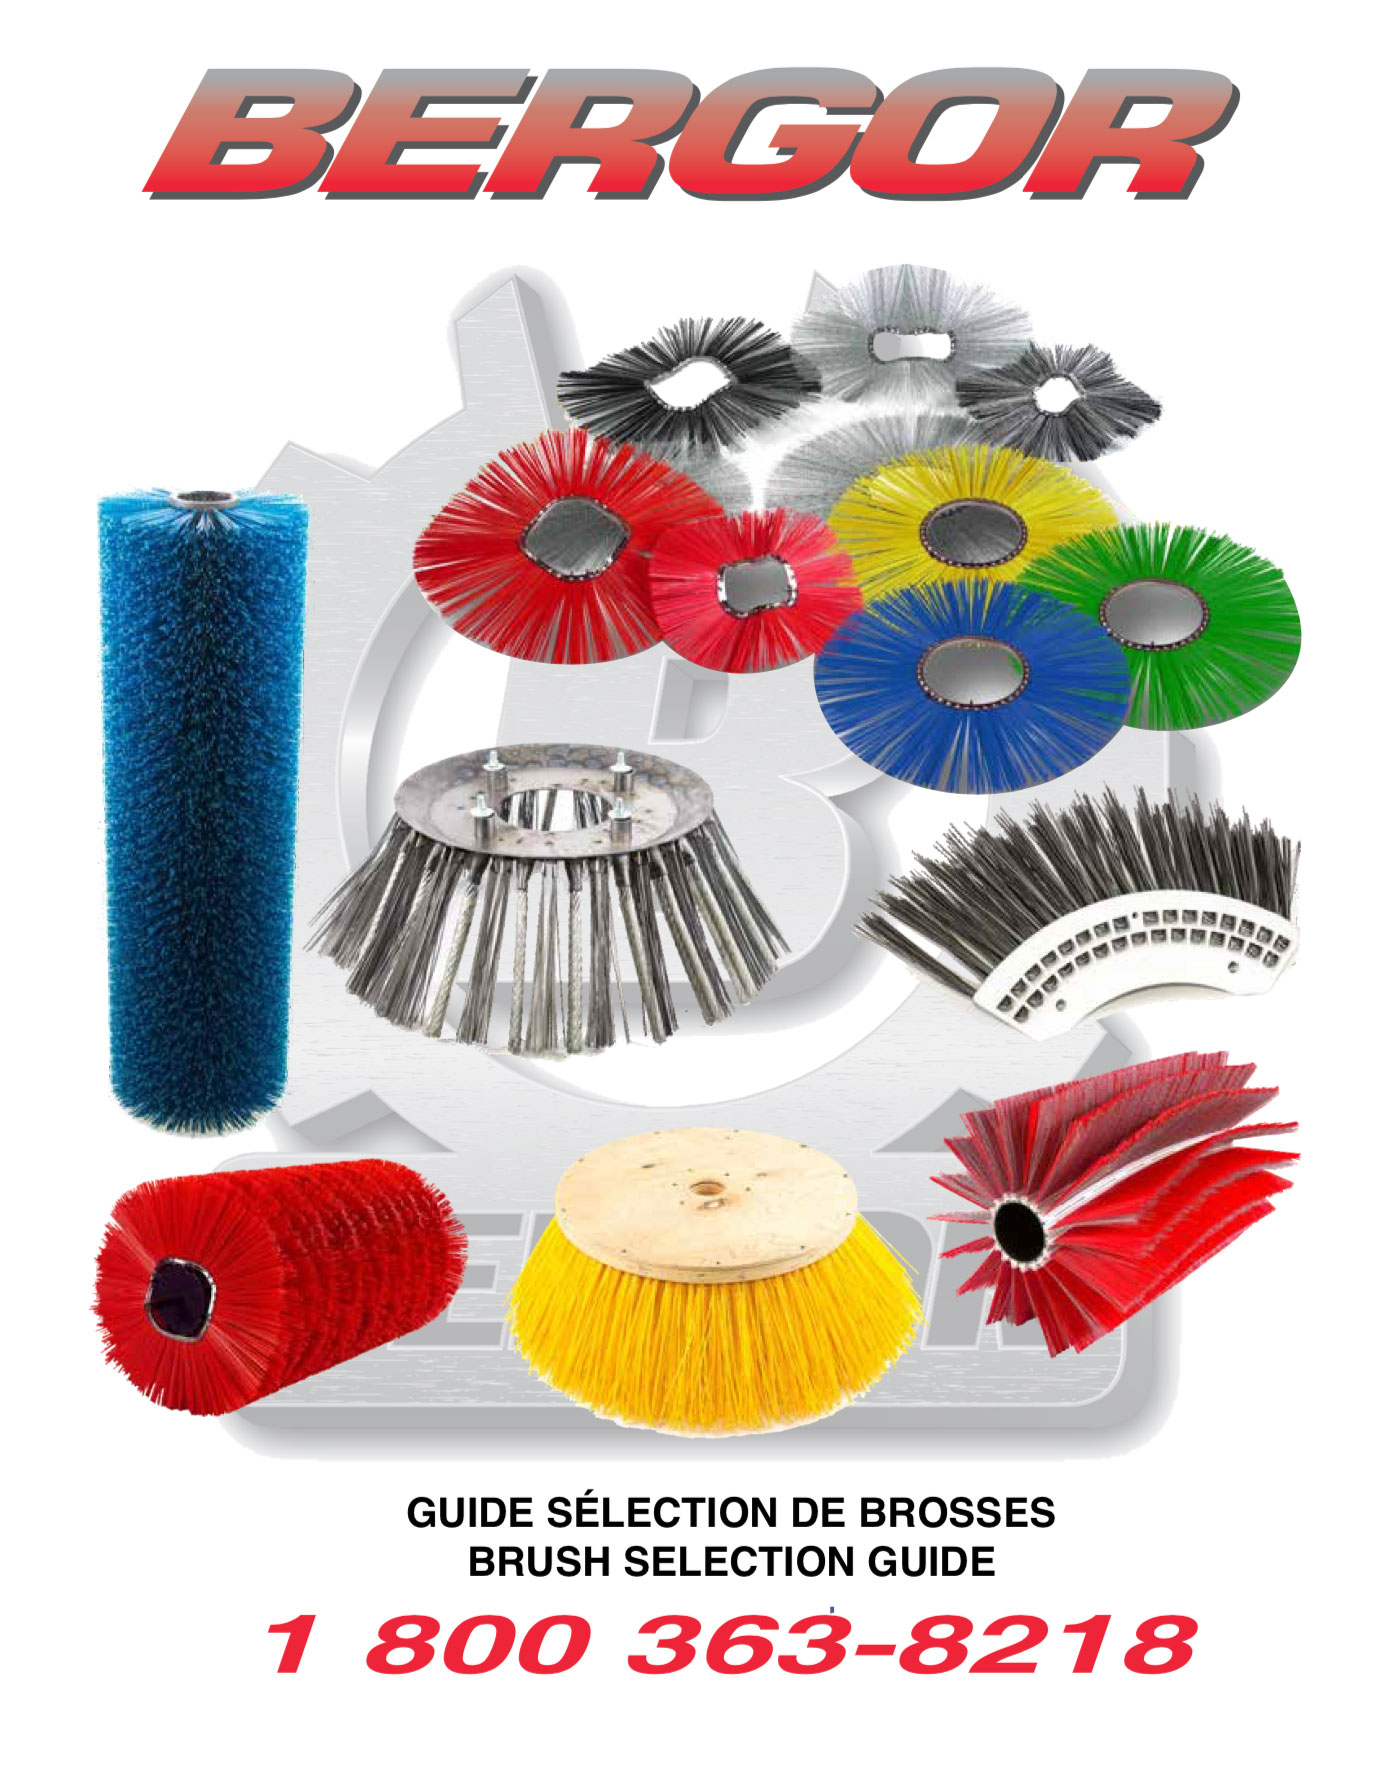 icone-catalogue-guide-selection-brosses_bergor